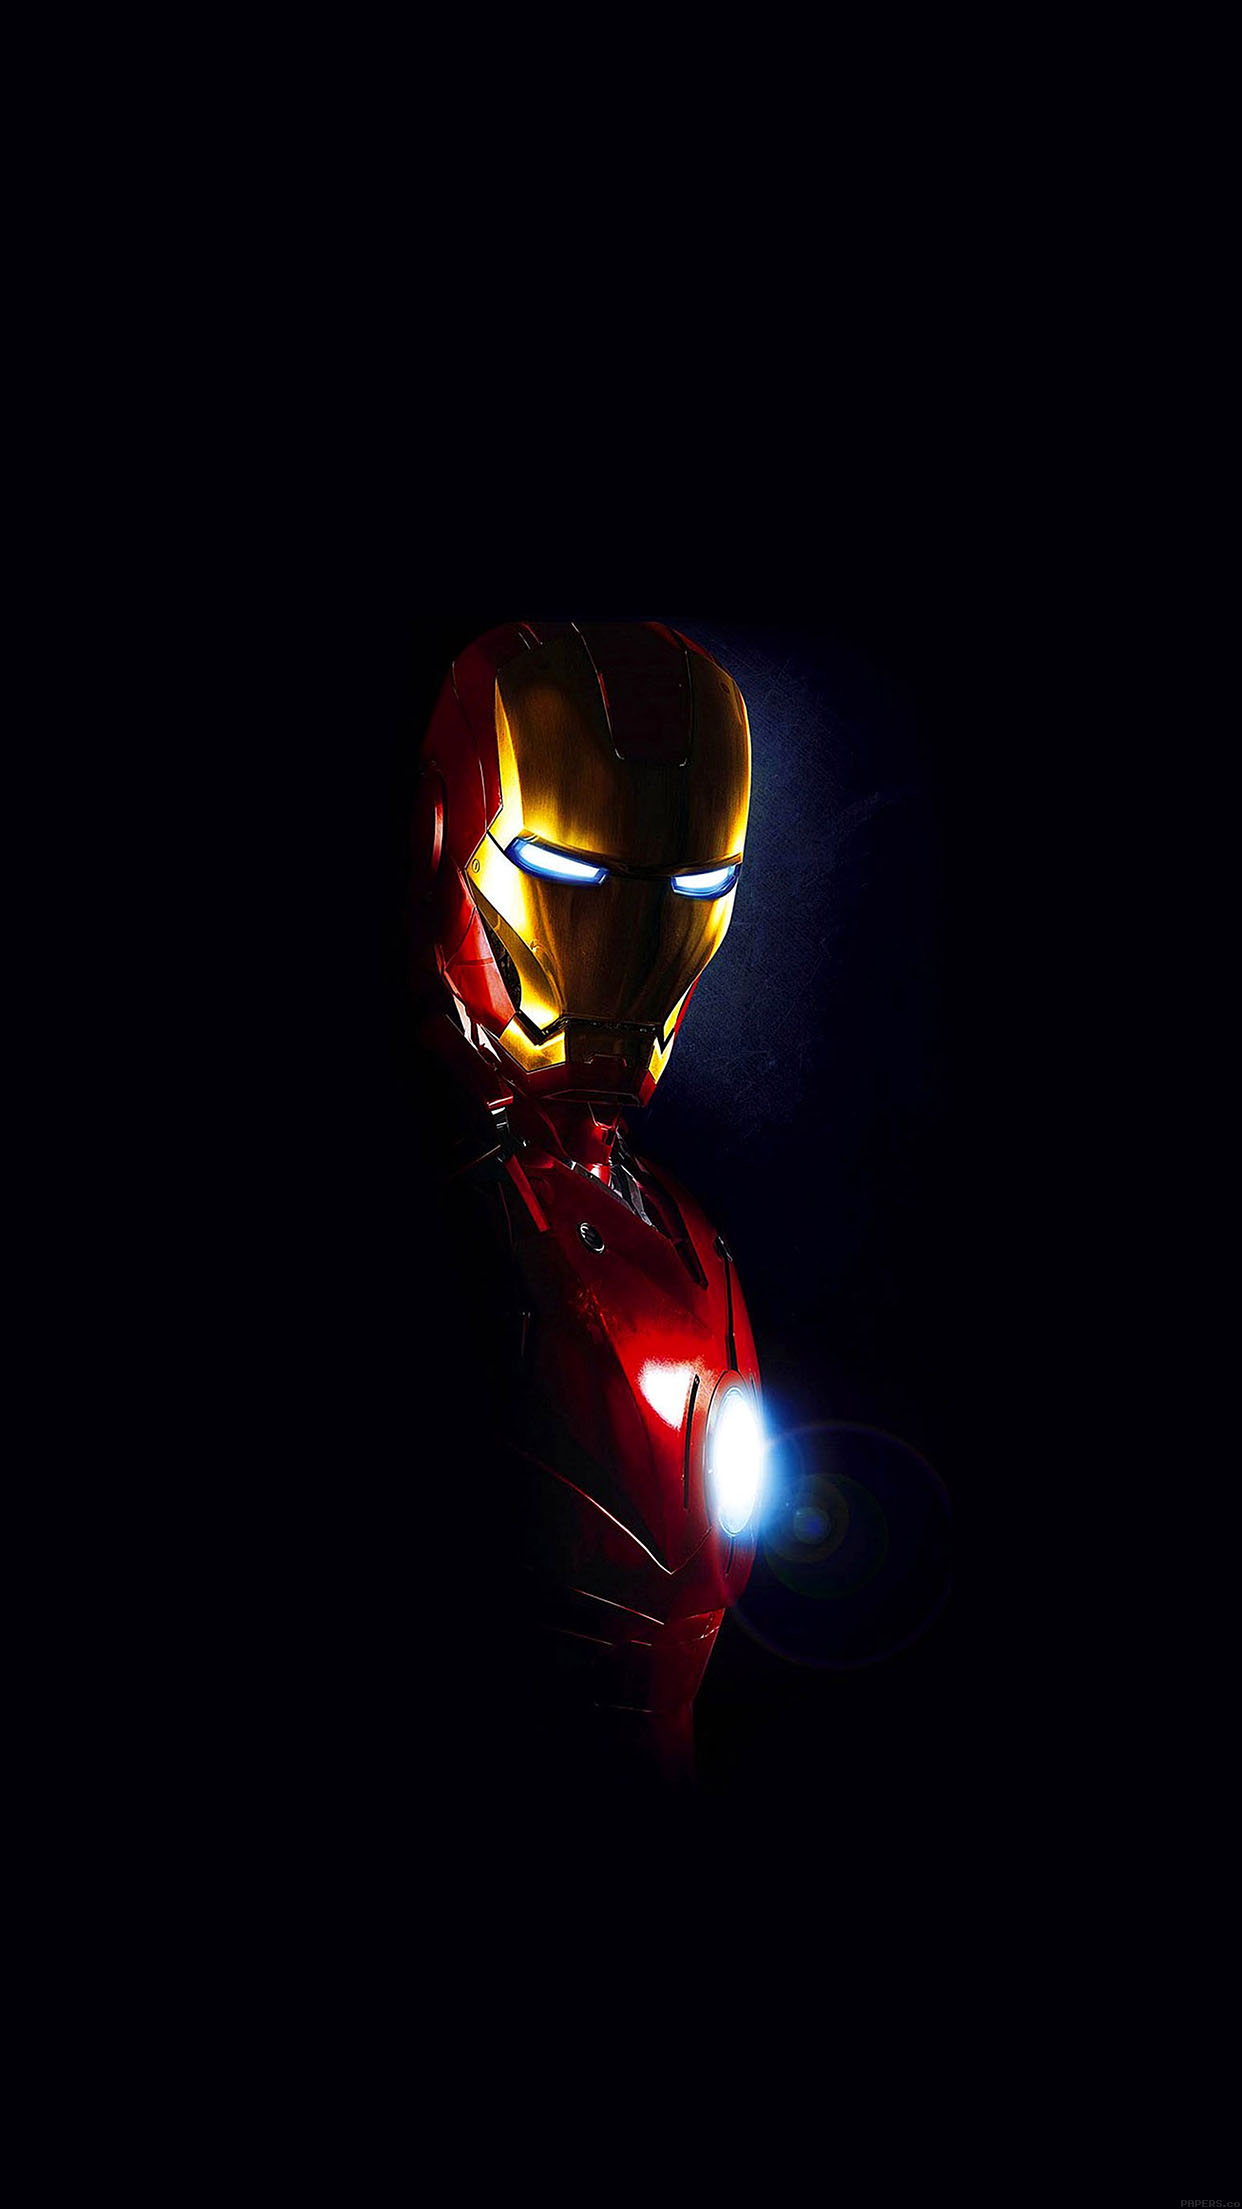 Ironman In Dark Film Art Android Wallpaper Android Hd Wallpapers